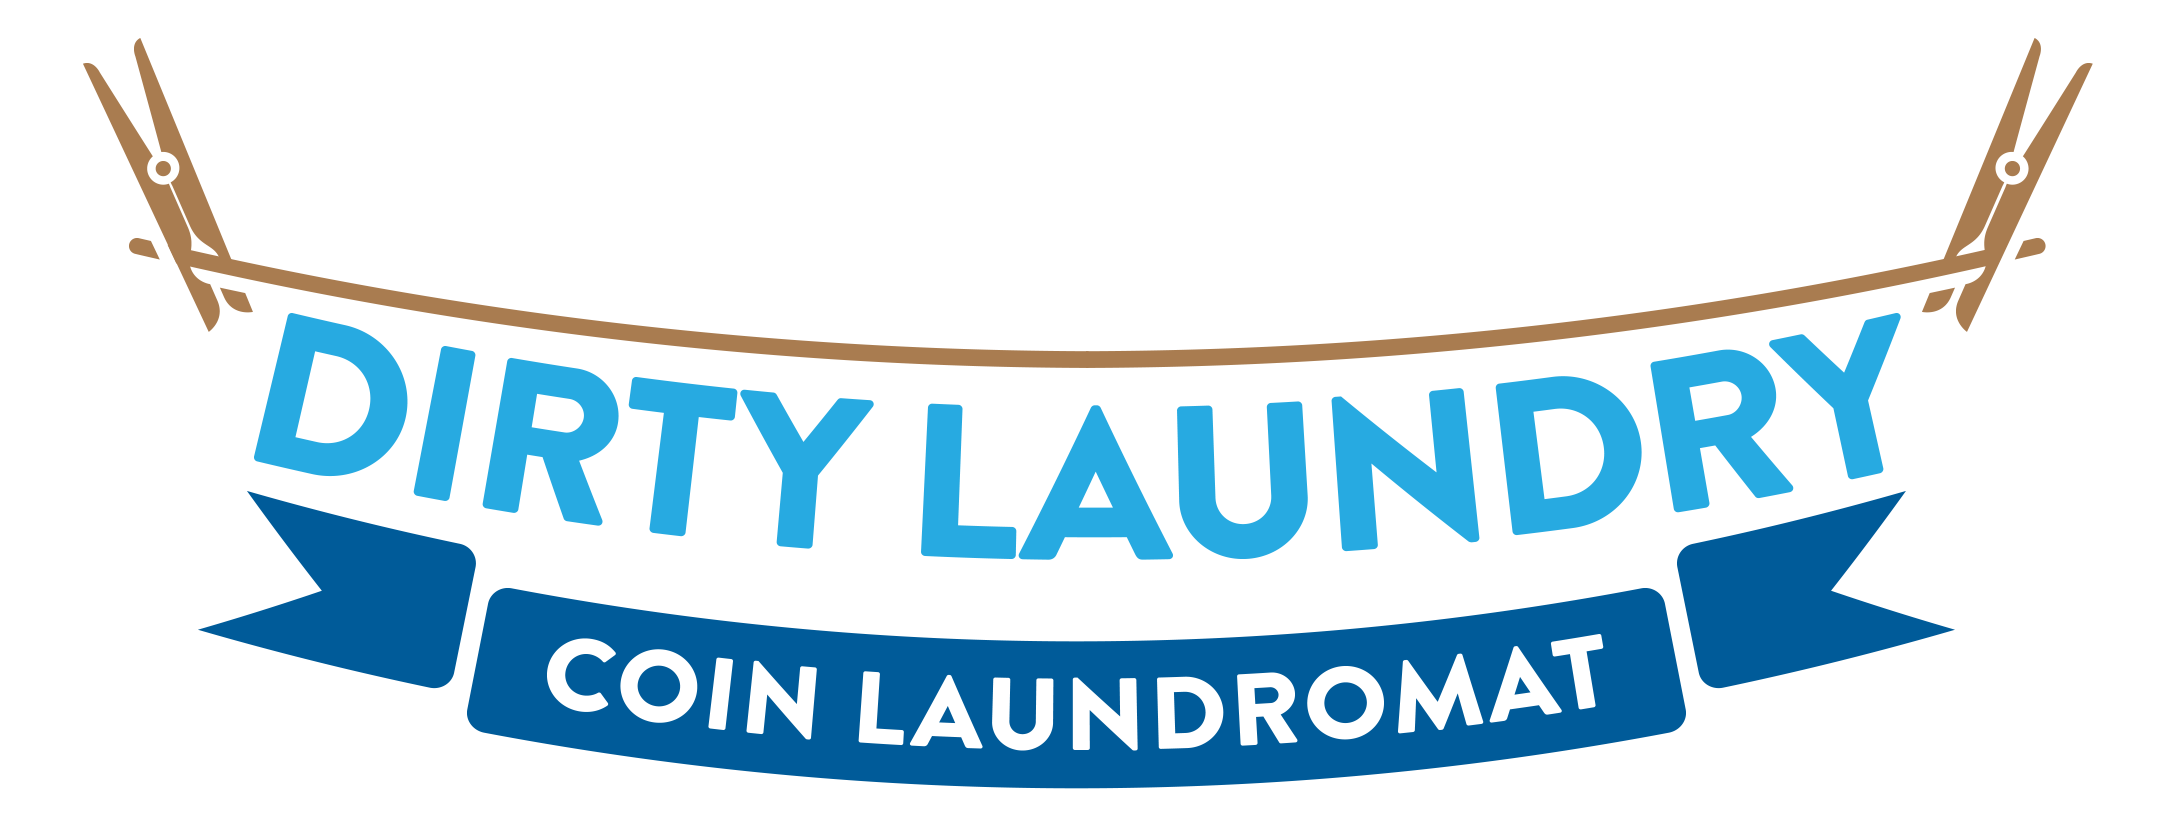 Elgin S 1 Coin Laundromat Dirty Laundry Coin Laundromat